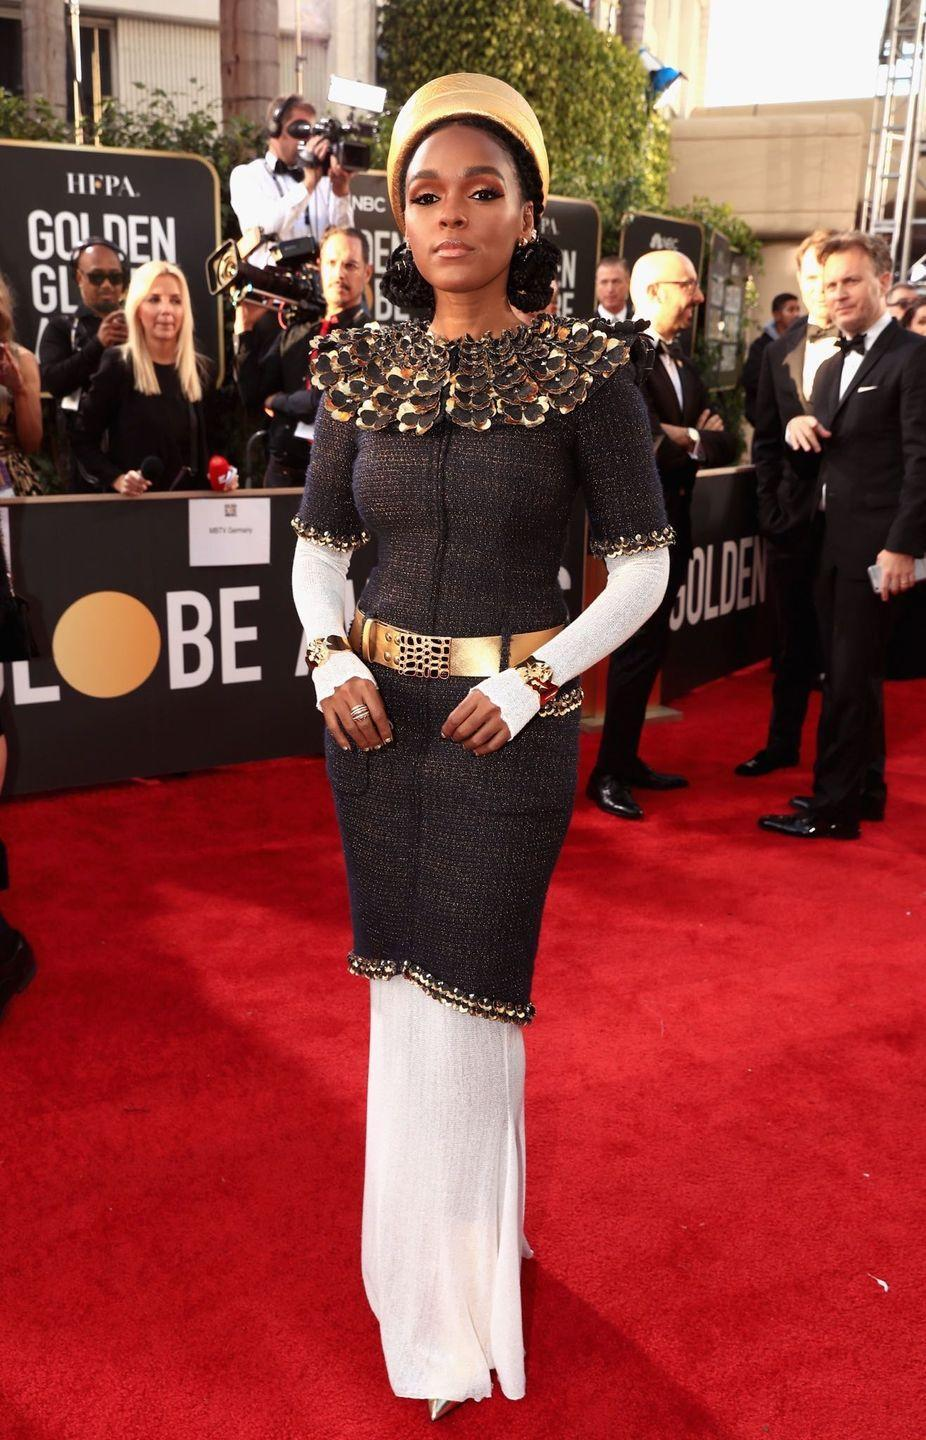 <p>Janelle Monae really went for it in this tweed Chanel look for the 76th Golden Globes. But it just goes to show—what works on the runway doesn't always win on the red carpet.</p>